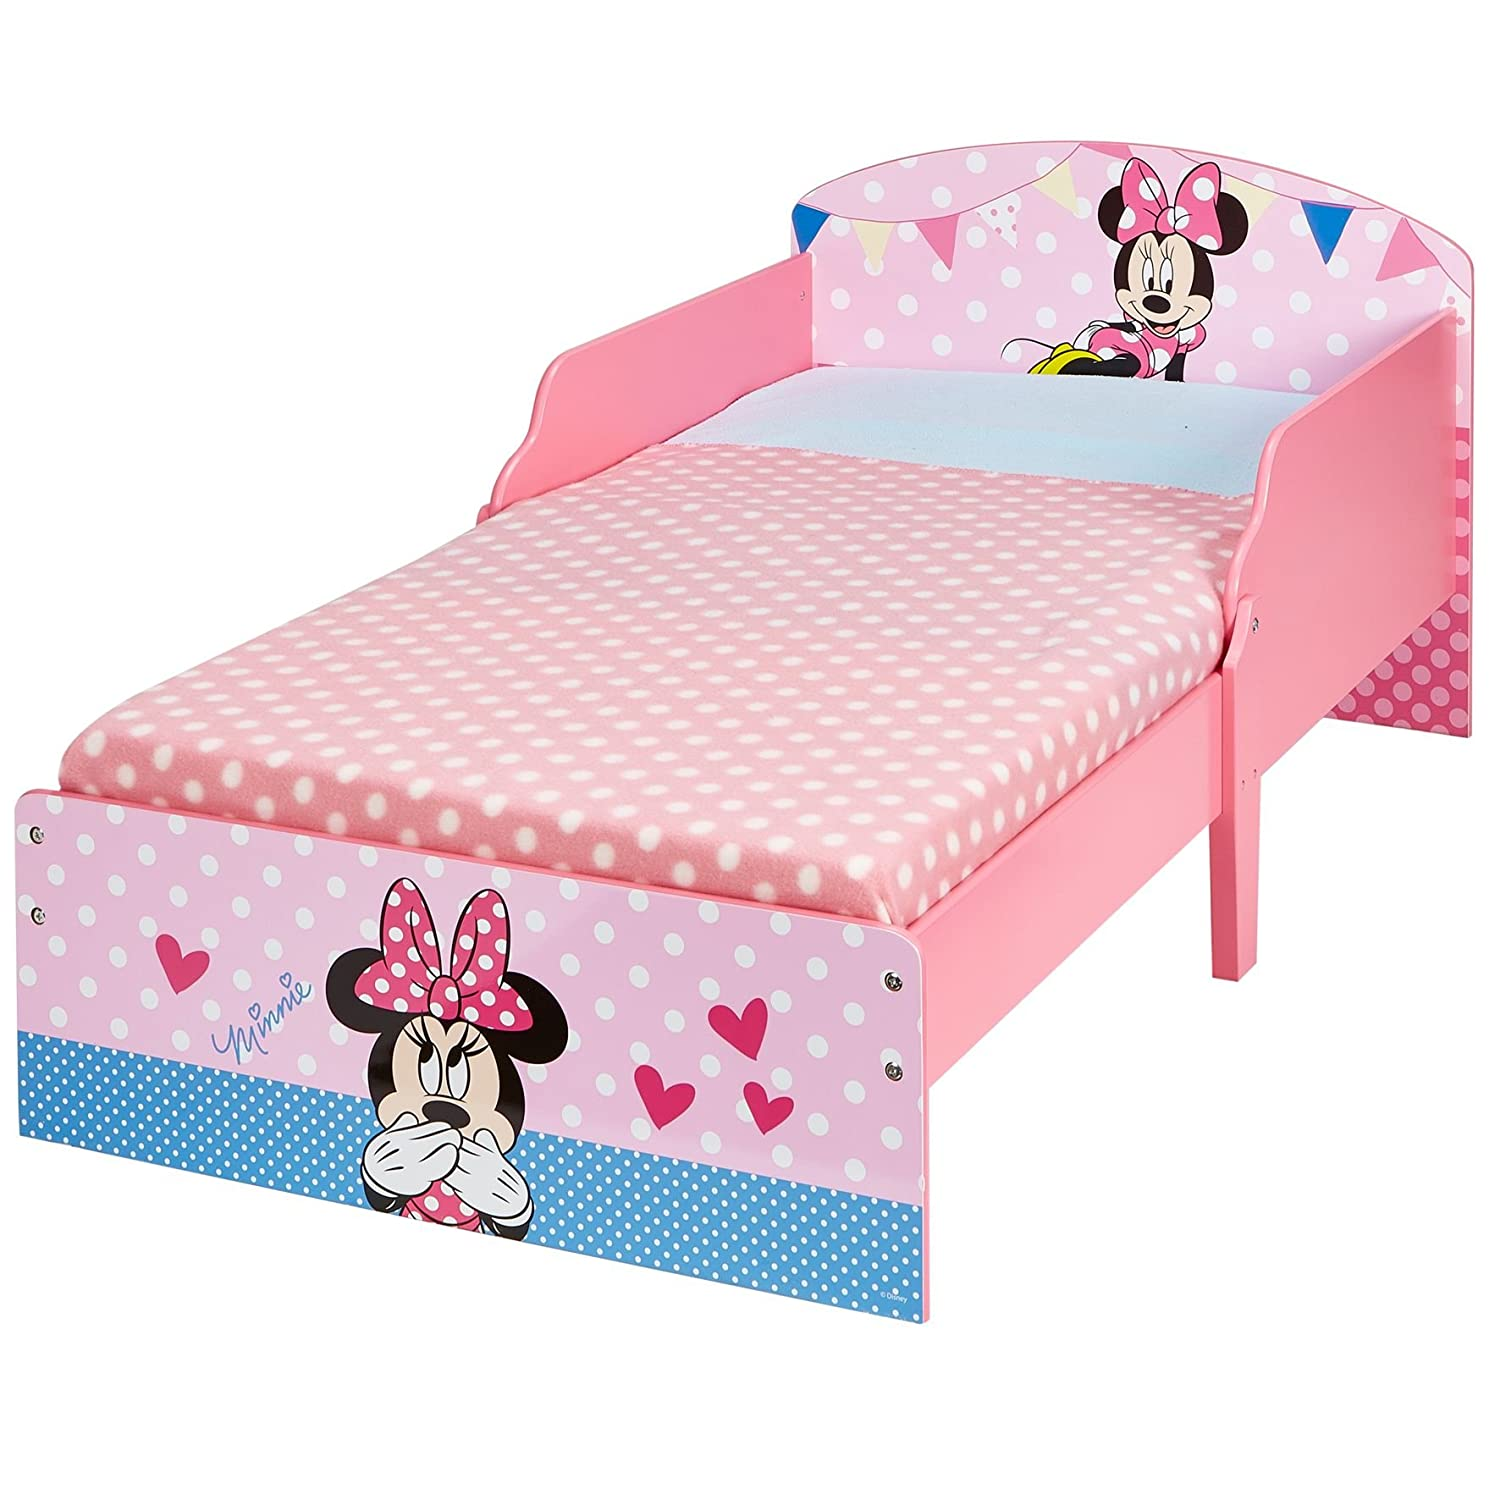 Disney 454MIS - Cama infantil con diseño de Minnie Mouse, color rosa ...